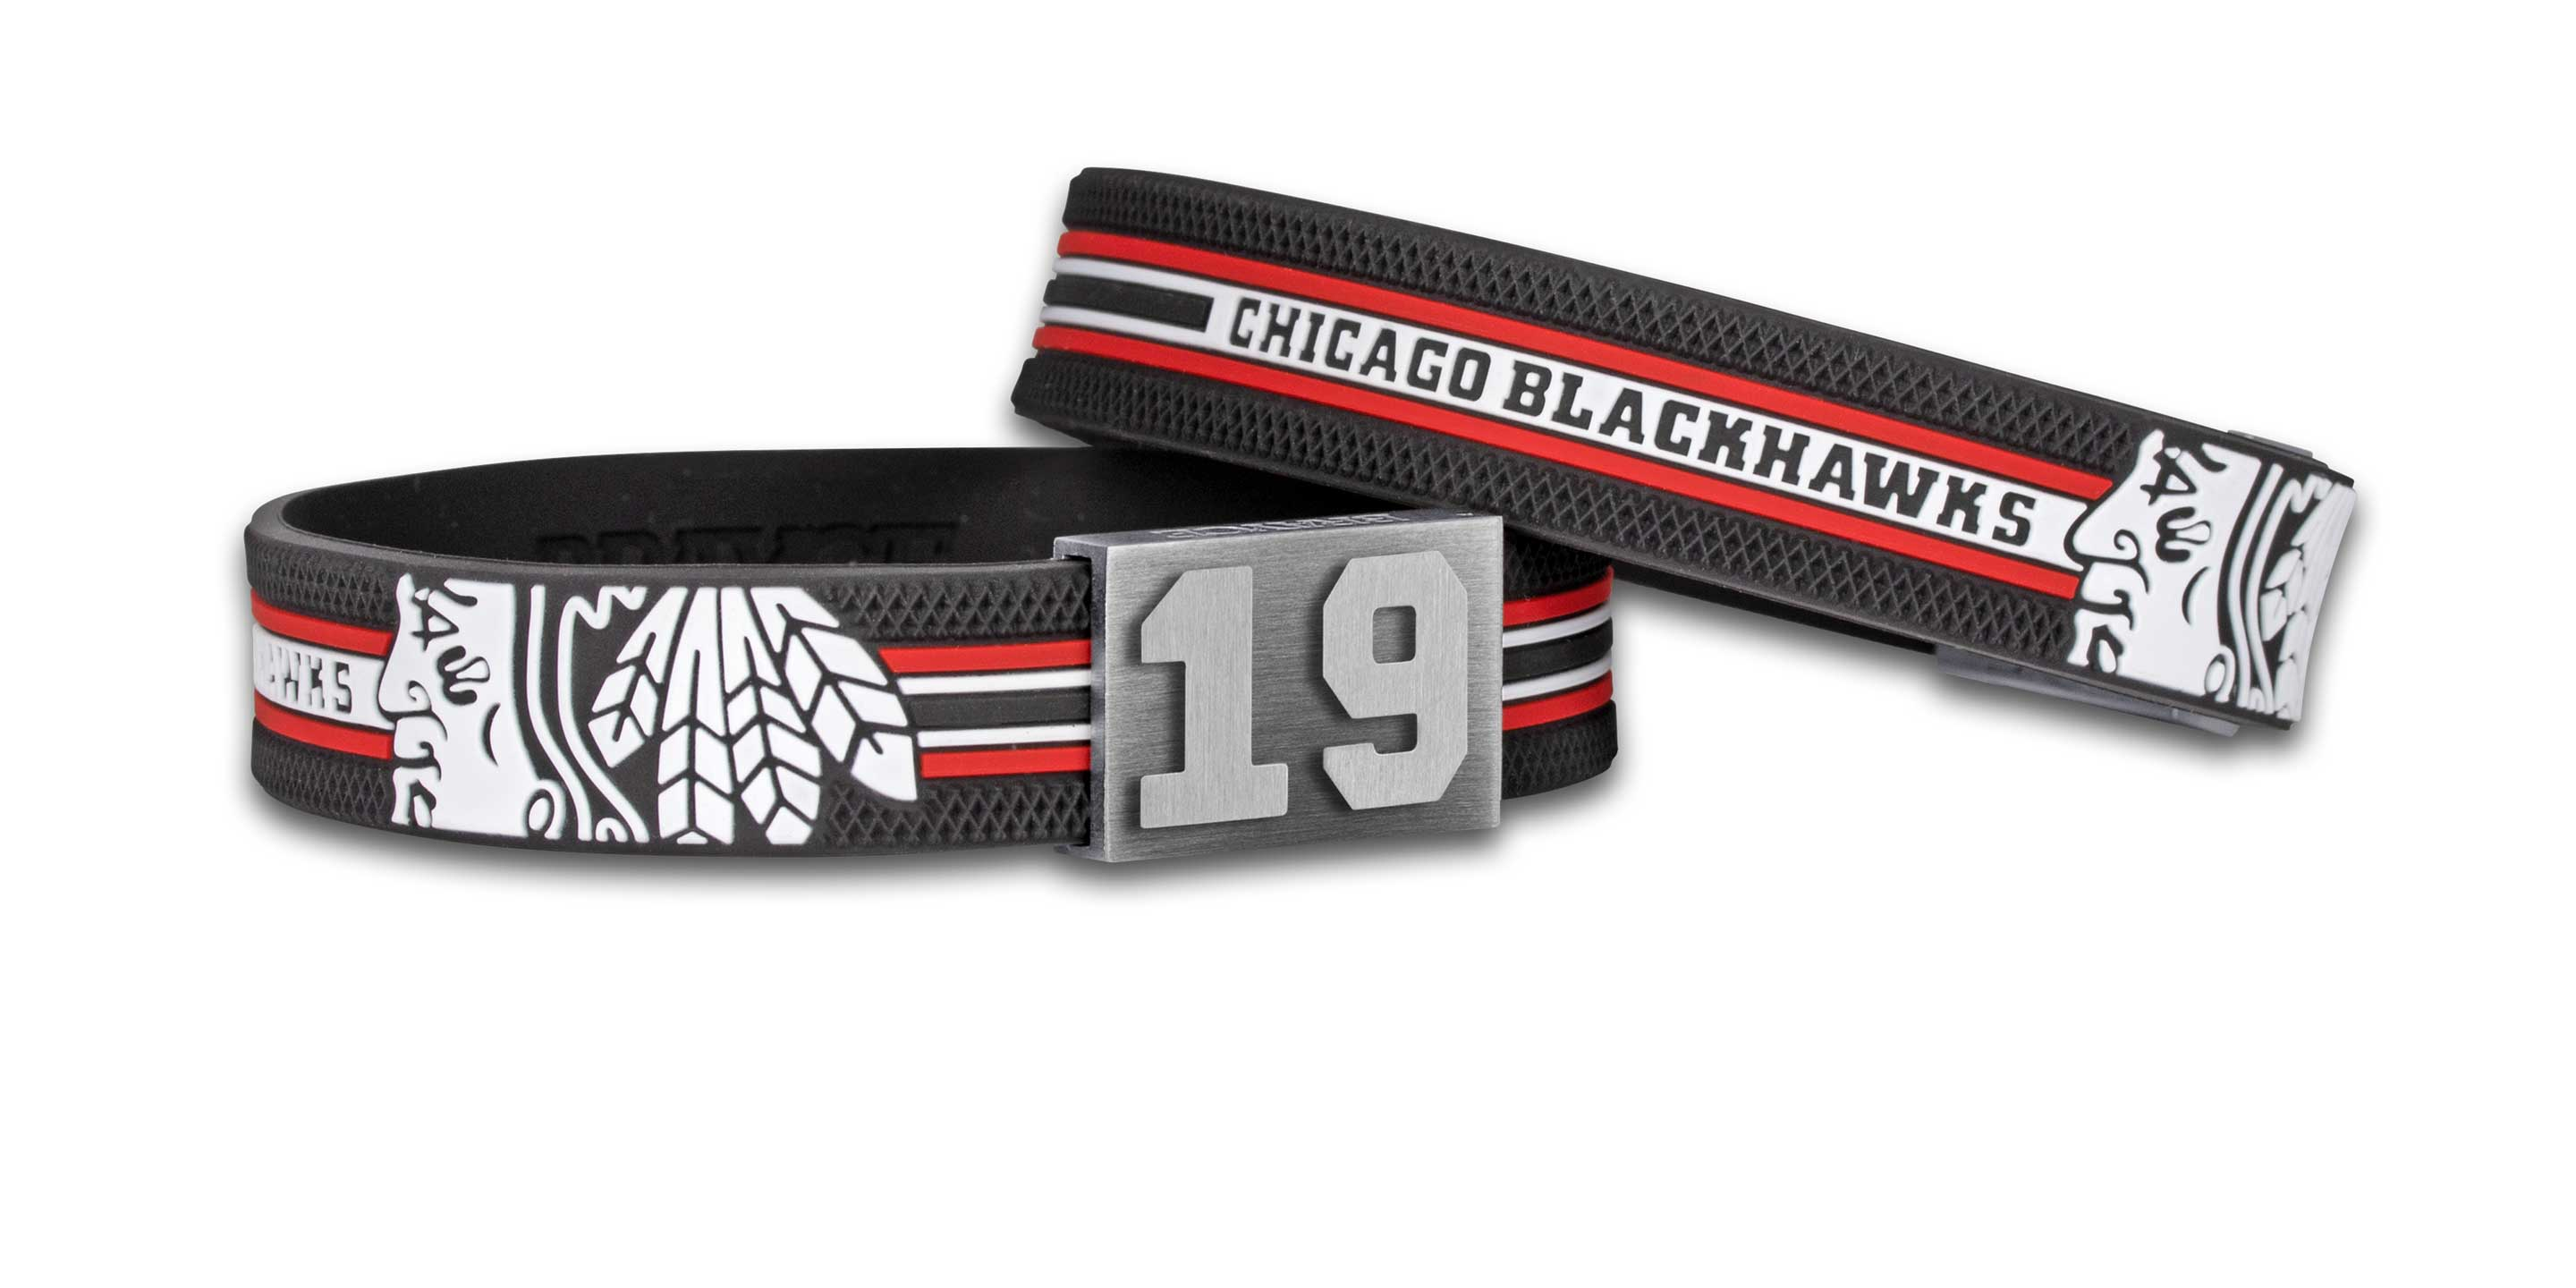 Chicago Blackhawks bracelet number 19